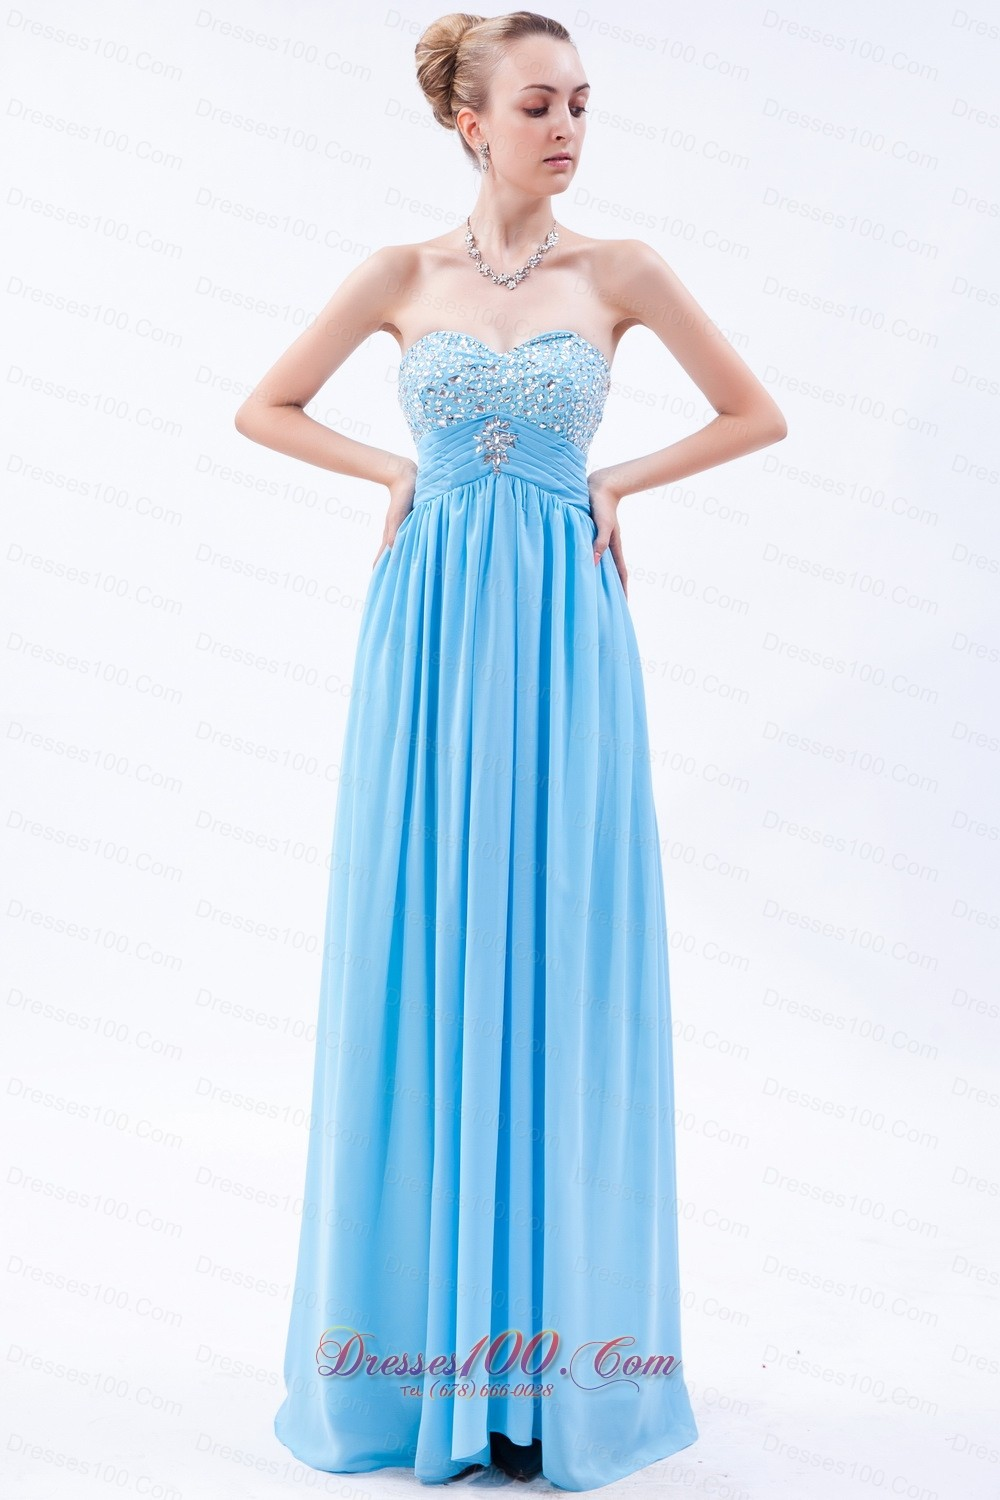 Baby Blue Empire Beaded Bust Prom Dress Pleating |Discount Prom Dresses